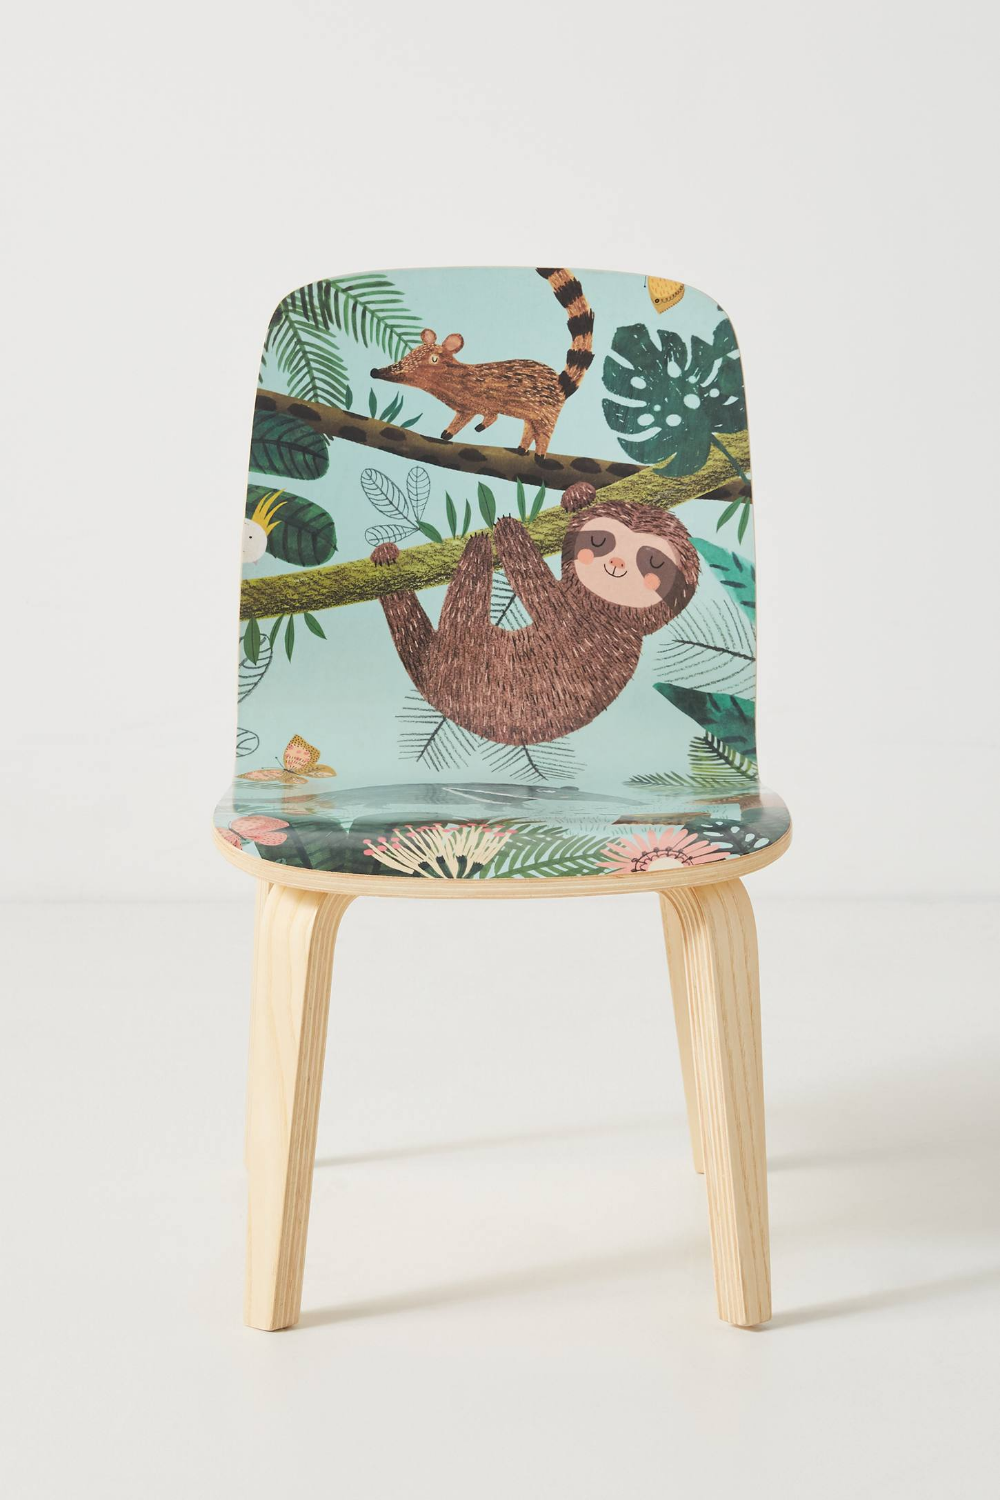 Rebecca Jones Tropical Tamsin Kids Chair Kids Chairs Childrens Chairs Blue Accent Chairs